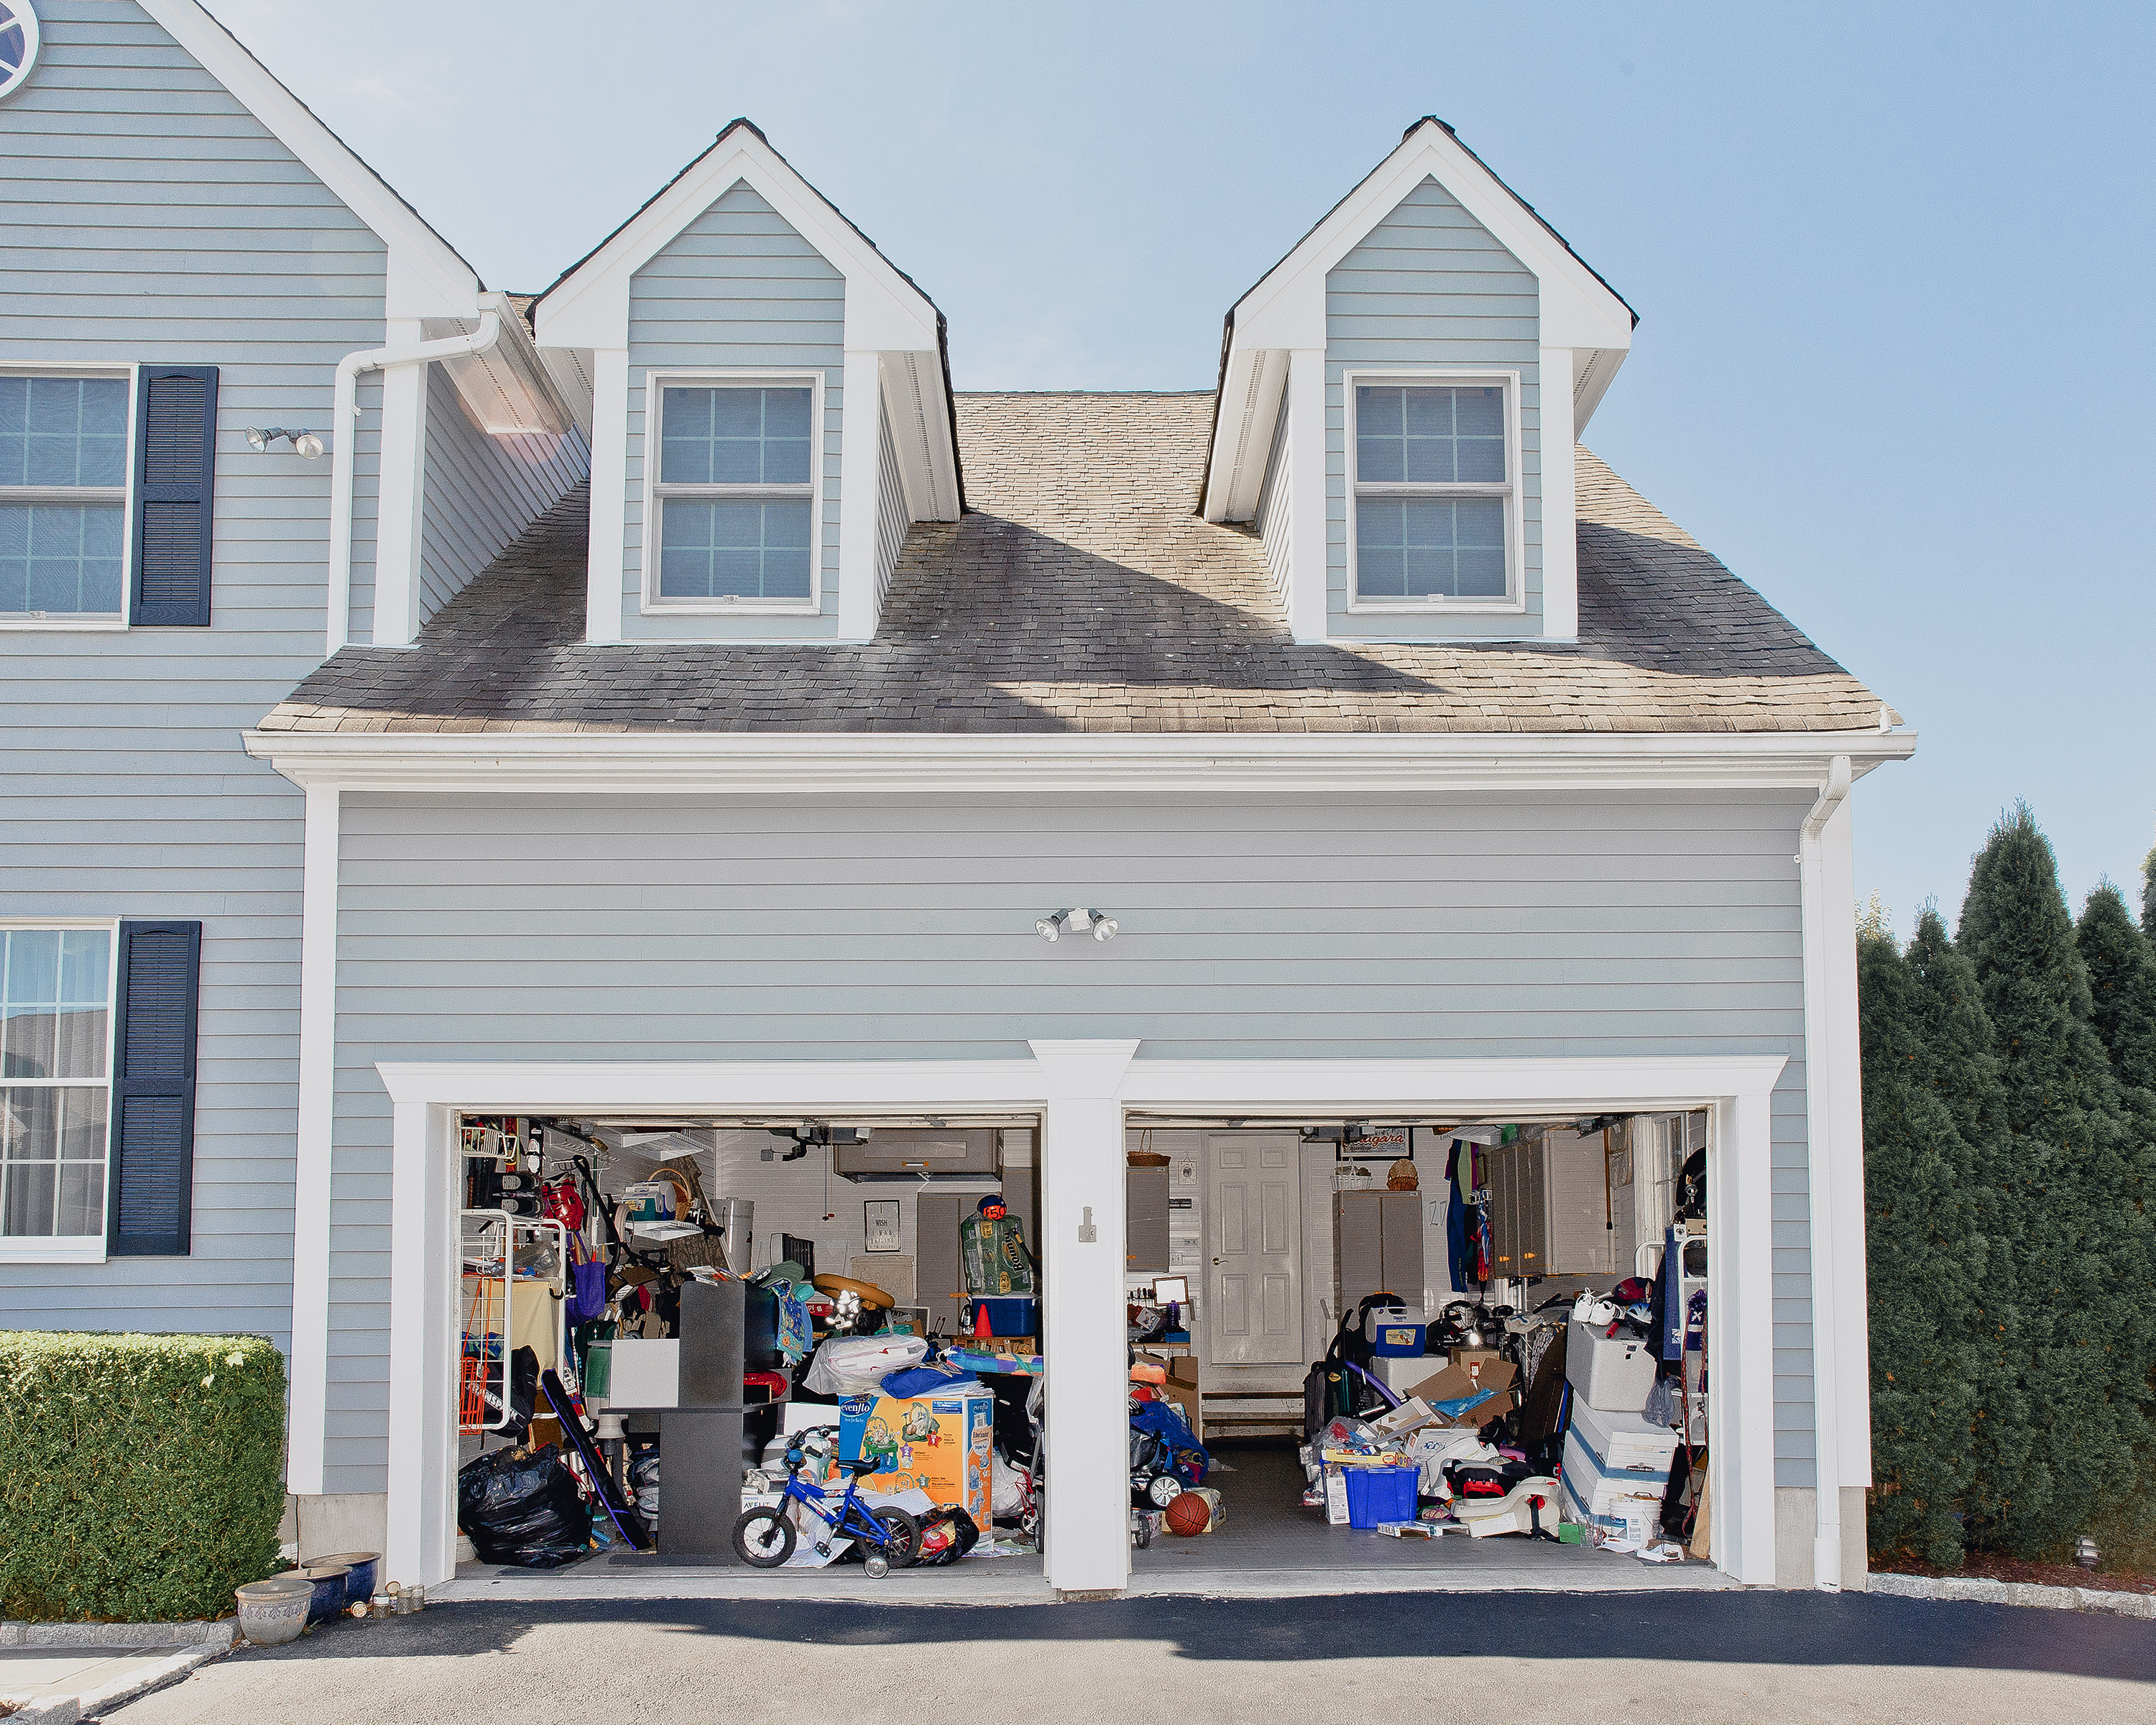 Three-quarters of garages surveyed in one study were so full, homeowners  couldn't park their cars inside.